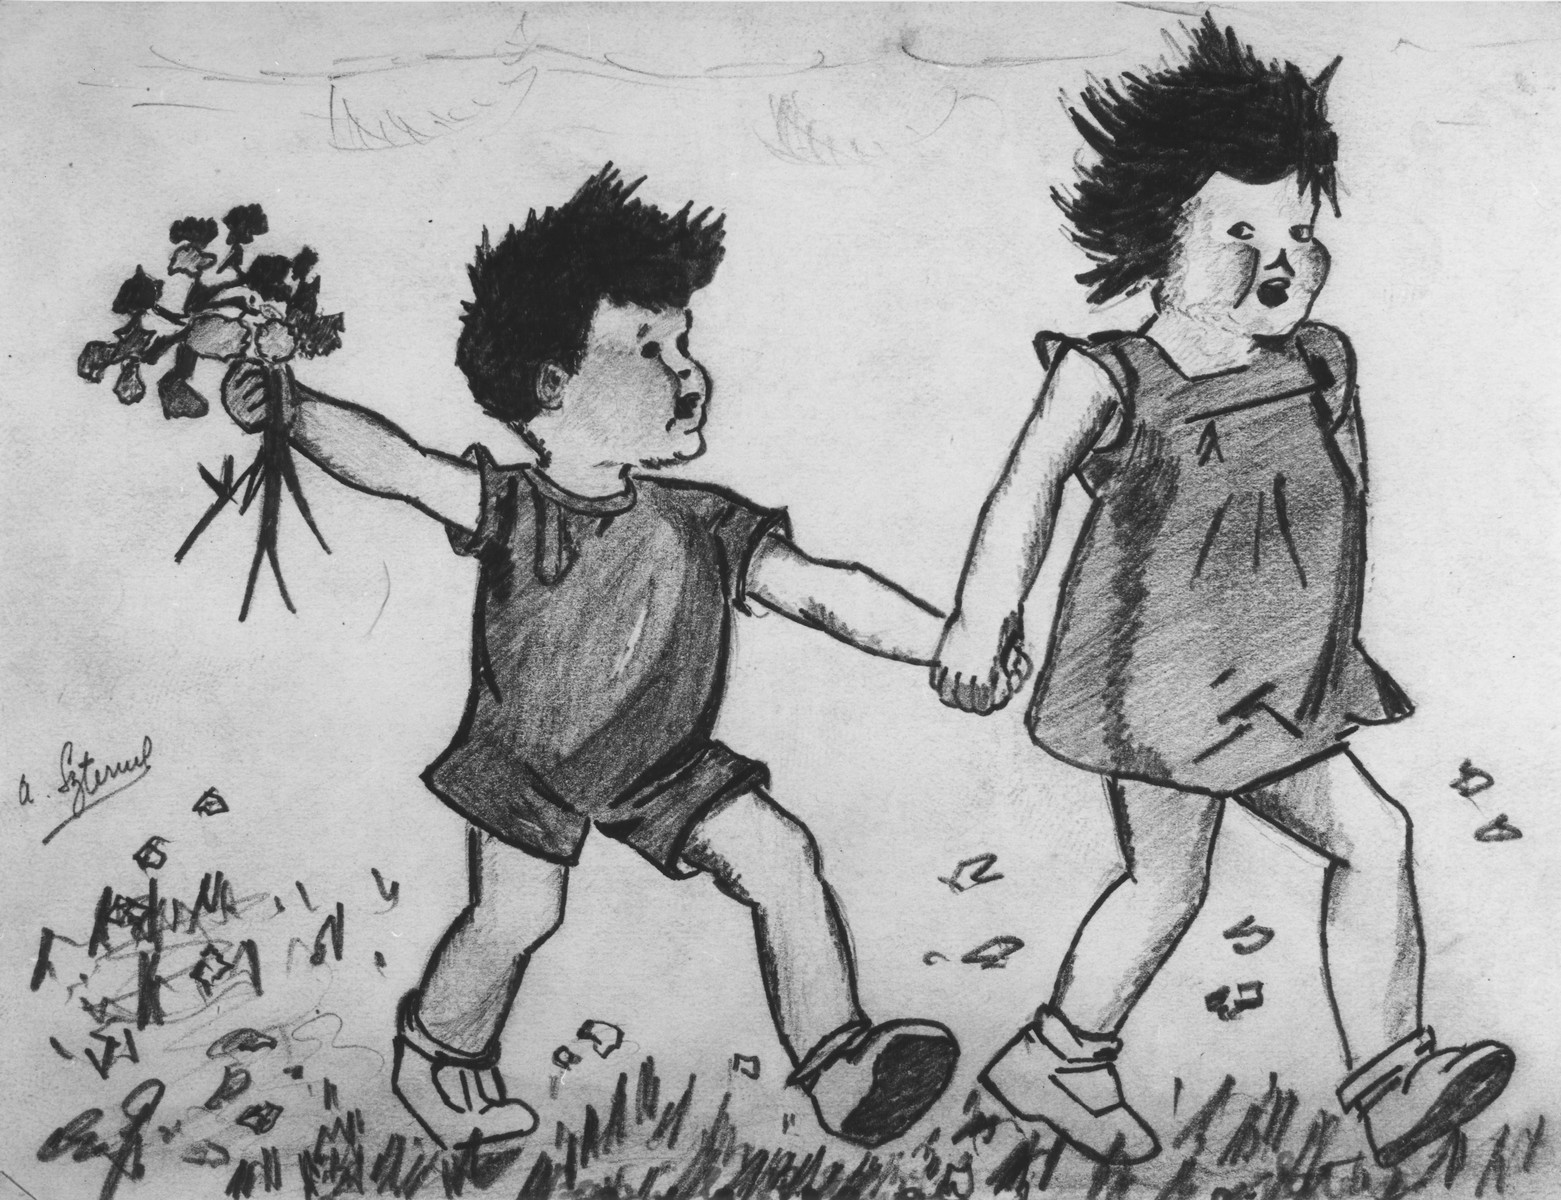 Sketch of two young children drawn by Aba Sztern in the Beaune-la-Rolande transit camp.